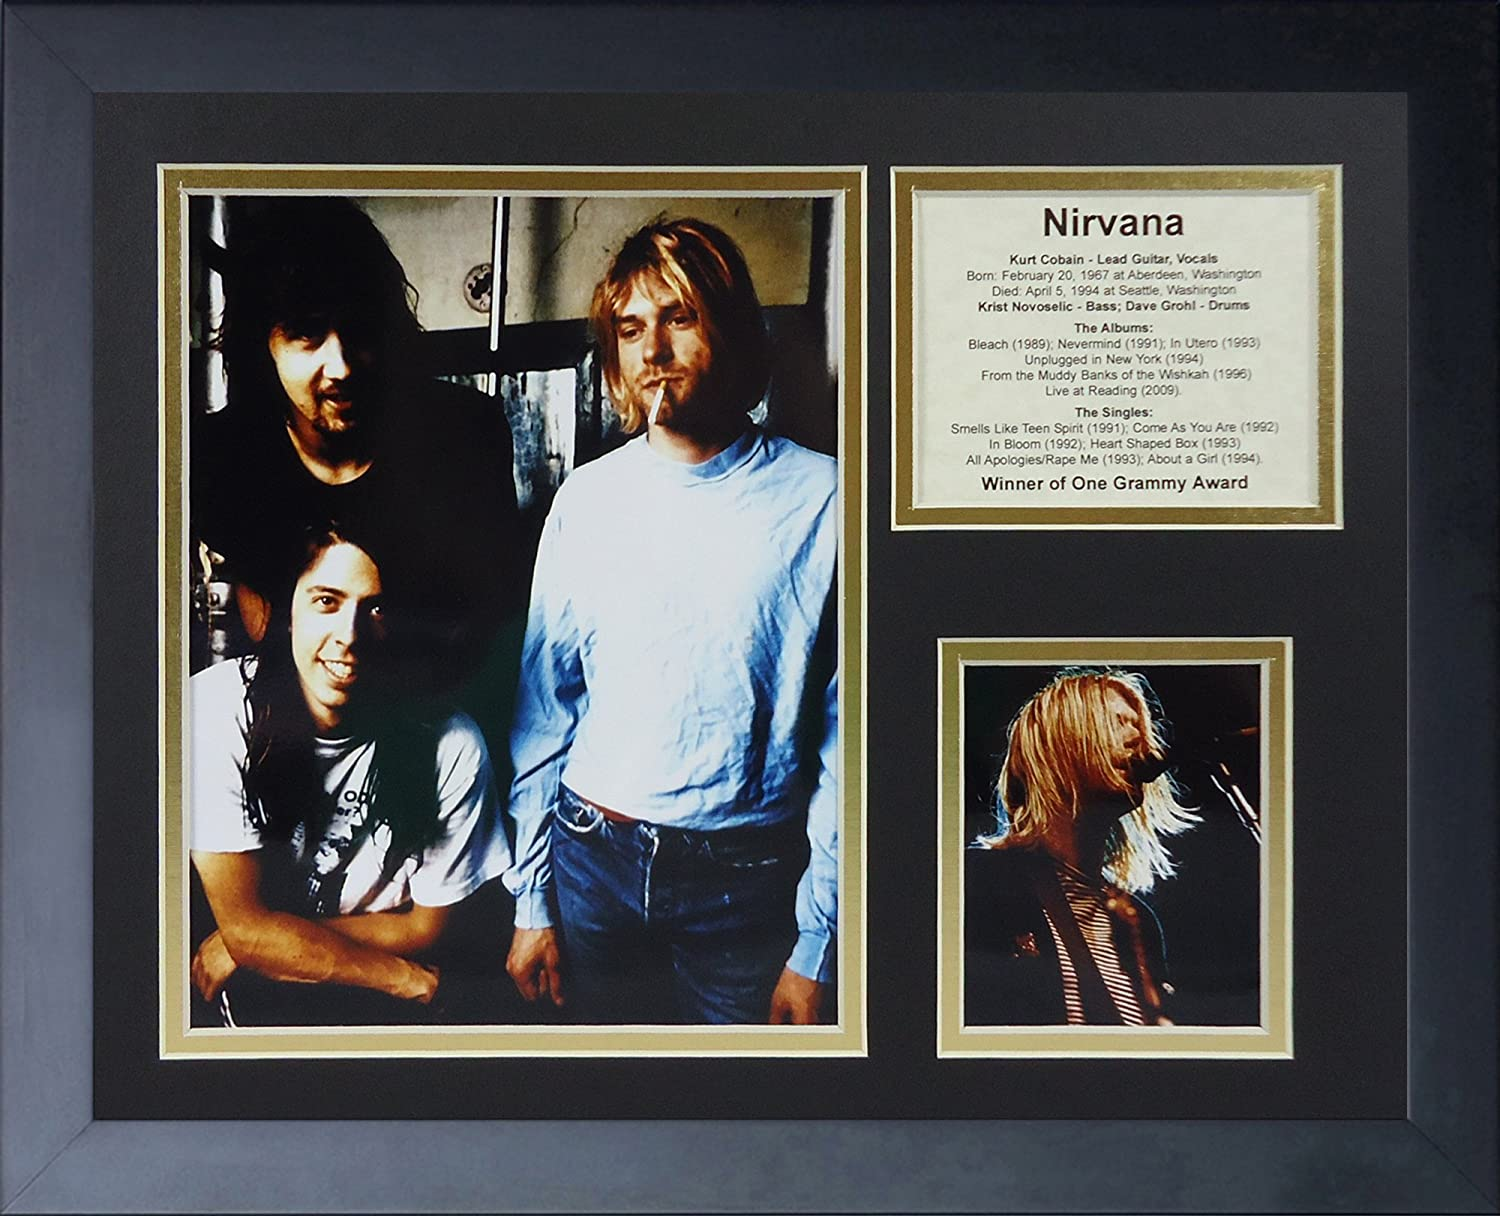 Legends Never Die Nirvana Framed Photo Collage 11x14-Inch